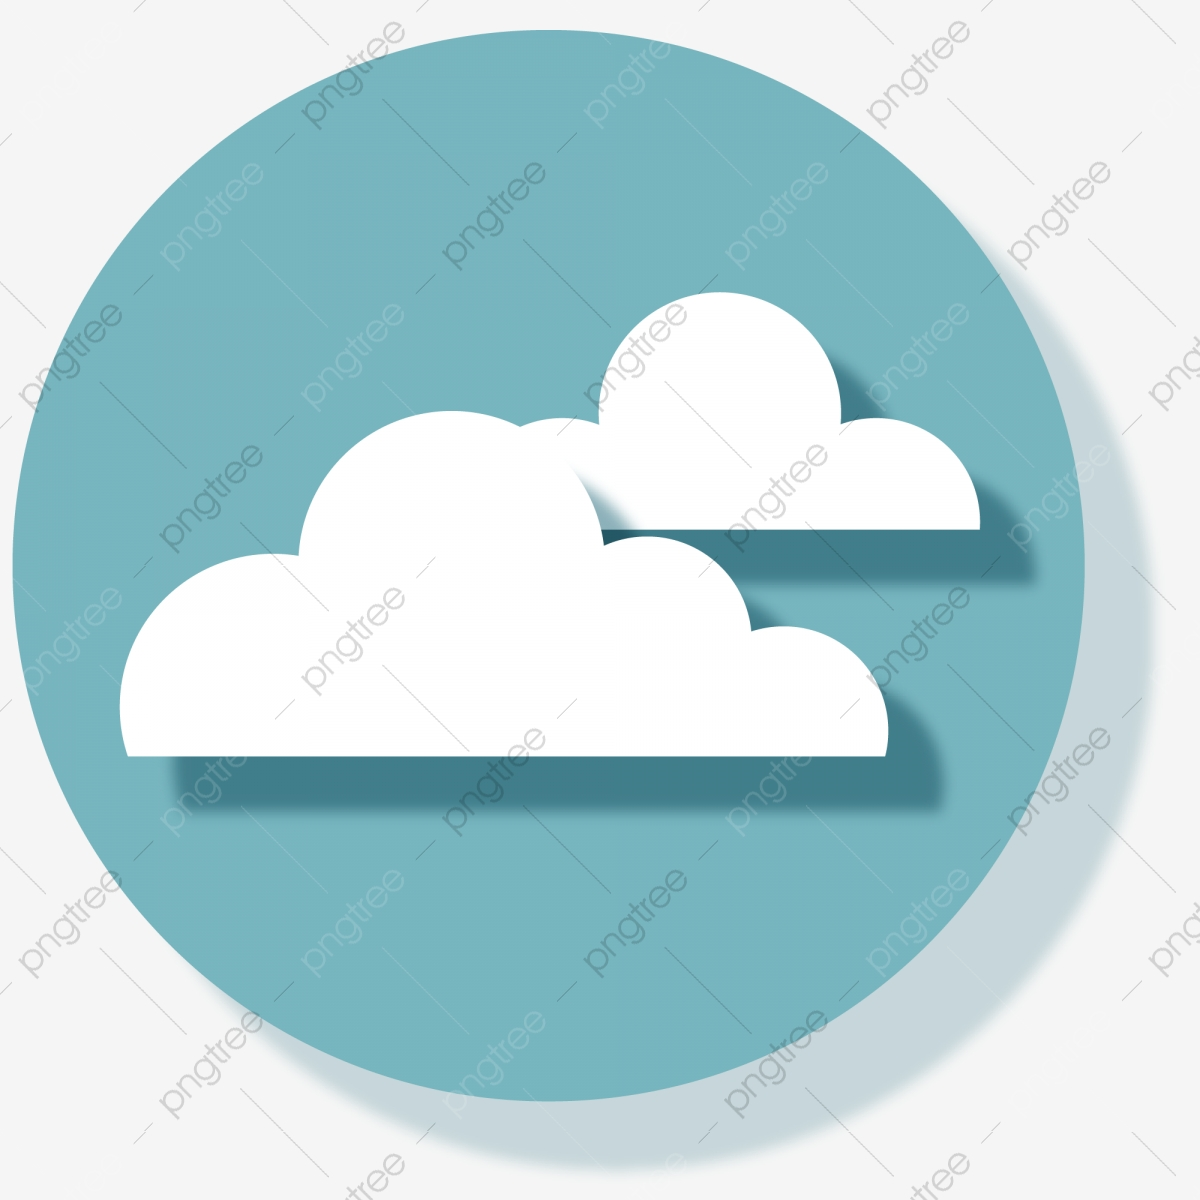 A Group Of Cartoon Clouds Icon Cloud Cartoon Cloud Cloud Icon Png Transparent Clipart Image And Psd File For Free Download Are you searching for cartoon cloud png images or vector? https pngtree com freepng a group of cartoon clouds icon 4550423 html